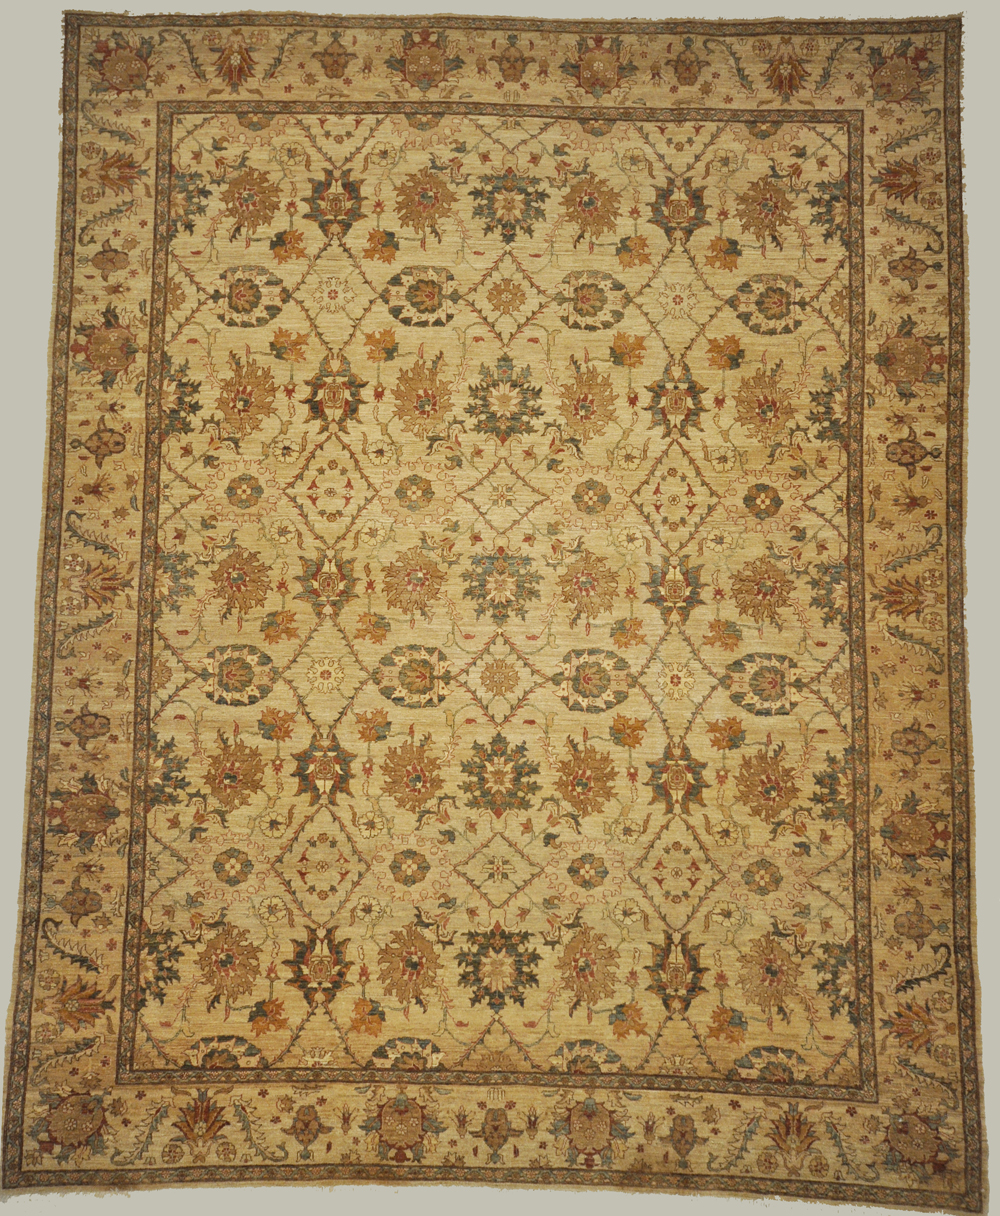 Finest Farahan rug and carpets that were produced in the Arak region of west central Iran, are remarkable for their ability to combine different qualities and sensibilities.